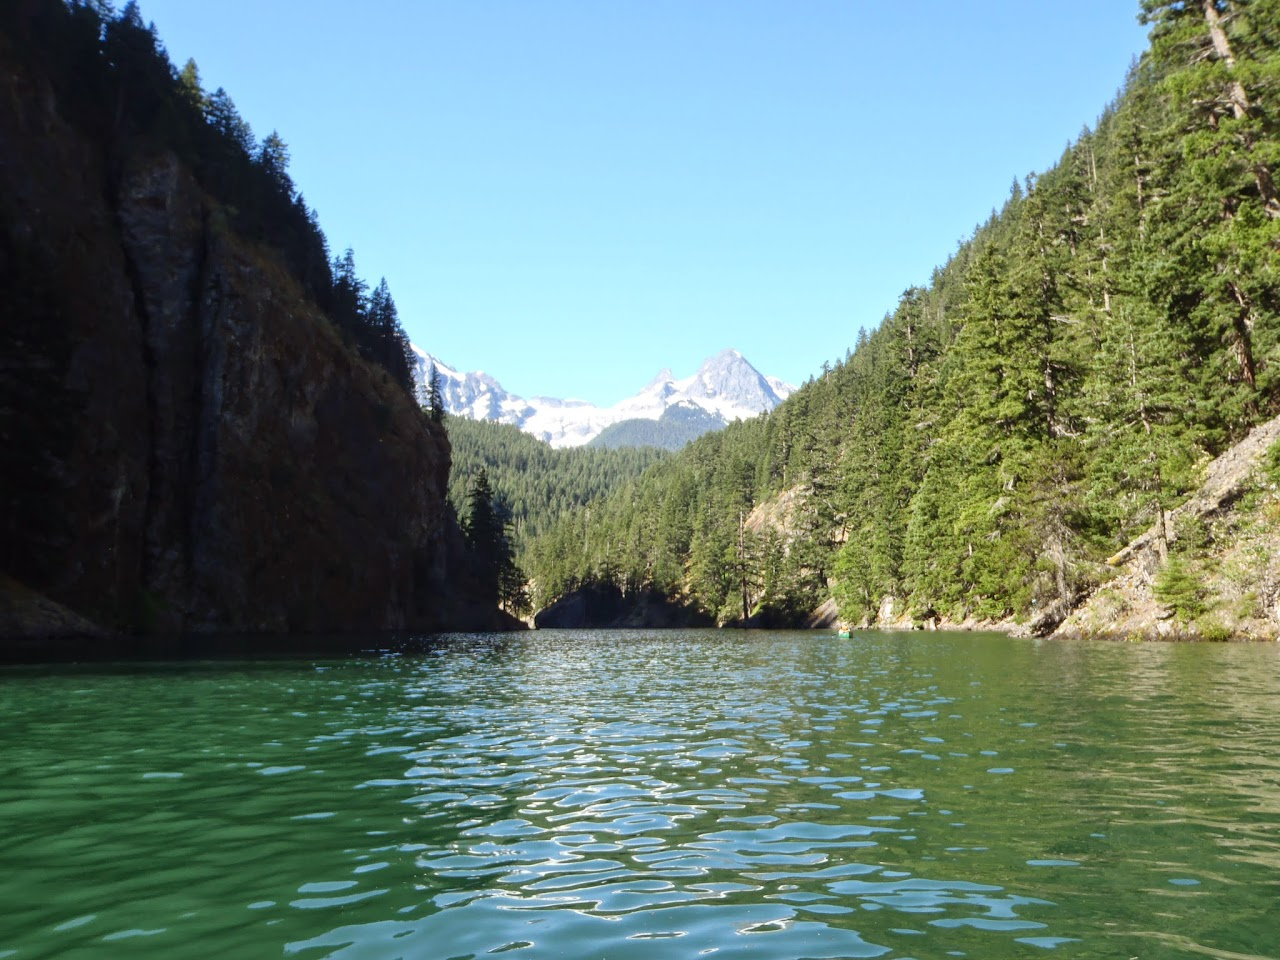 Ross Lake July 2014 - P7080070.JPG